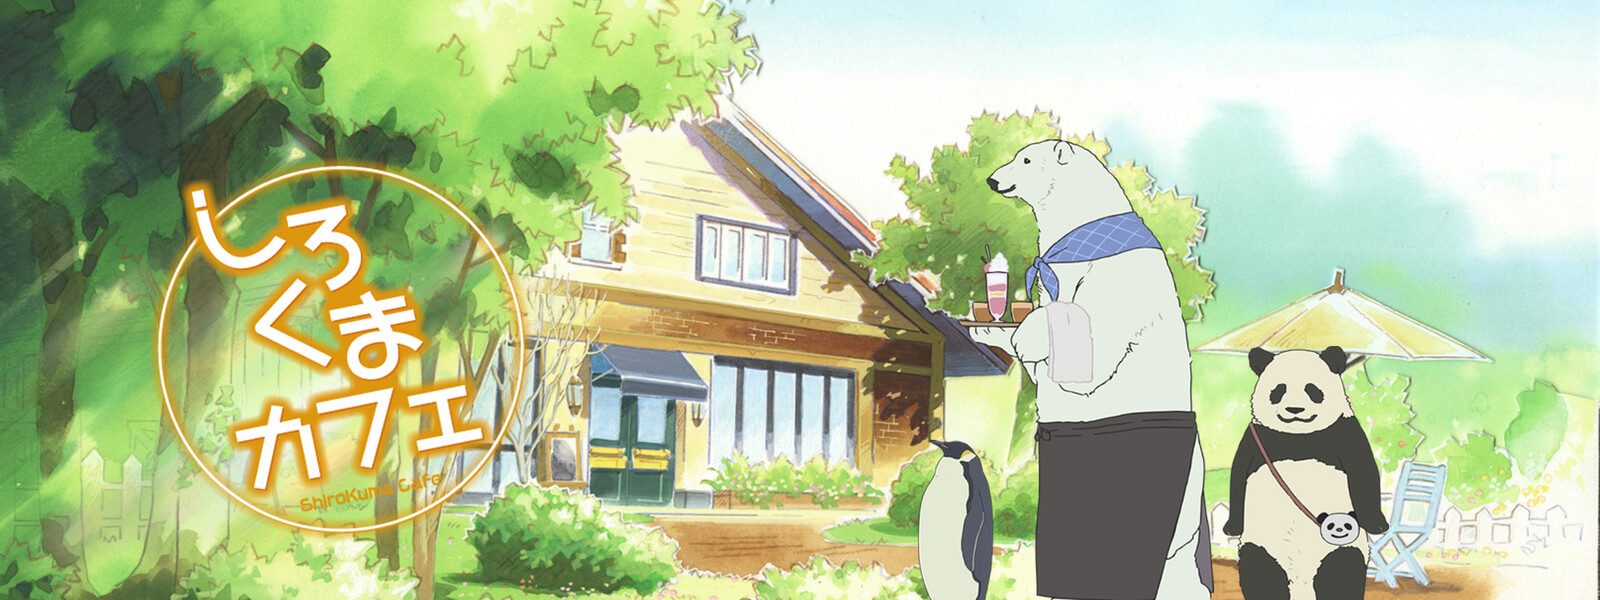 50027887 series art  768x2048 shirokuma cafe 6579288a5805c0f018912d55dfa4ce6e